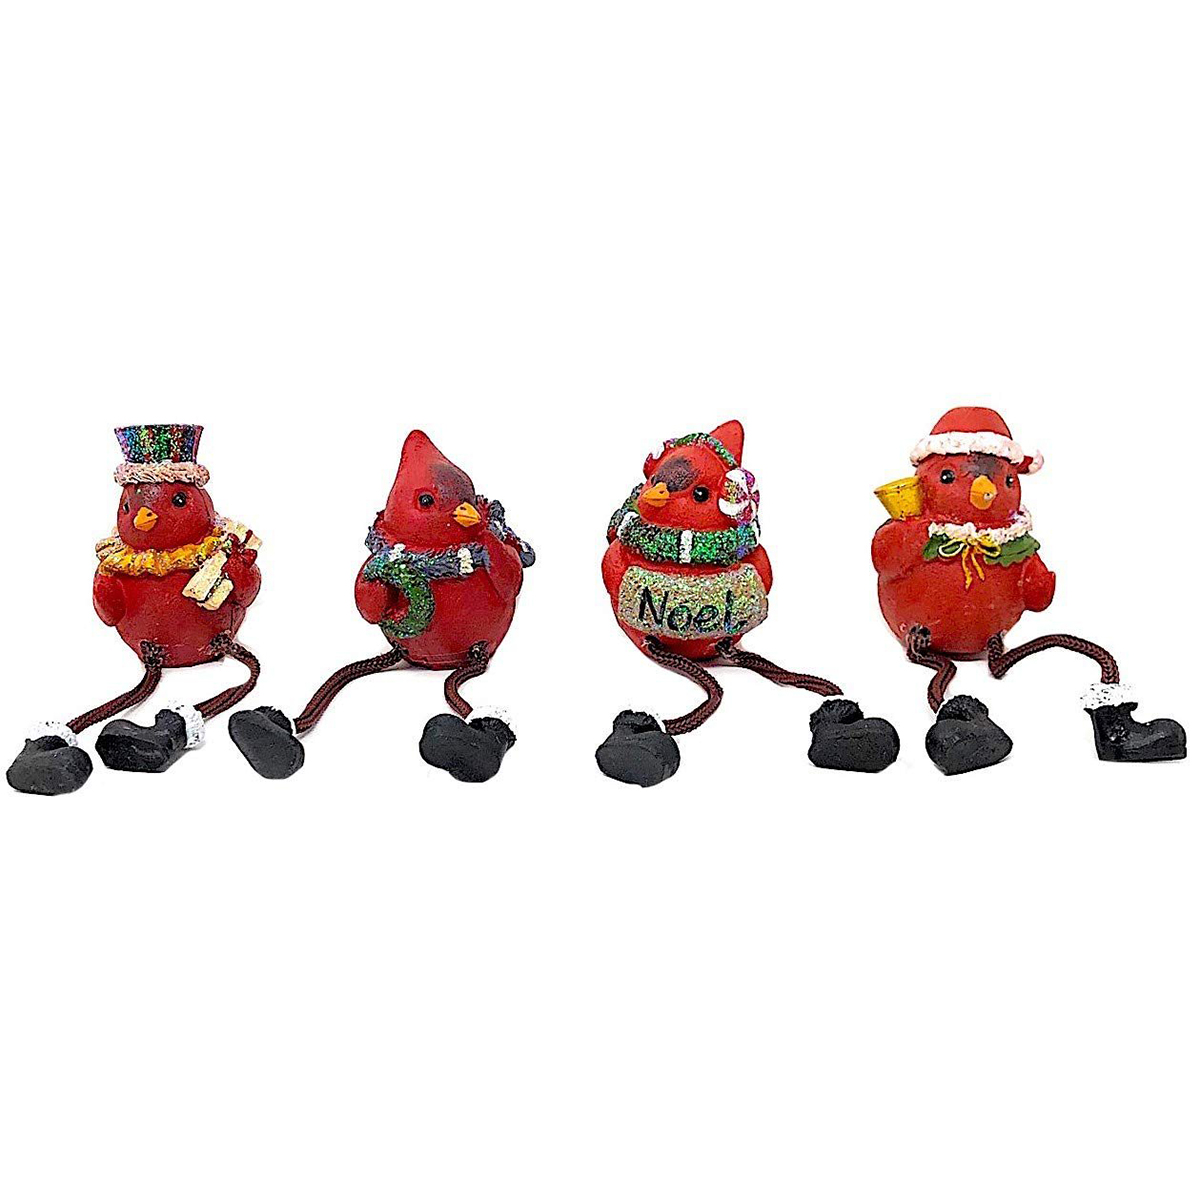 Transpac Red Cardinal Shelf Sitter Figurines, Set Of 4